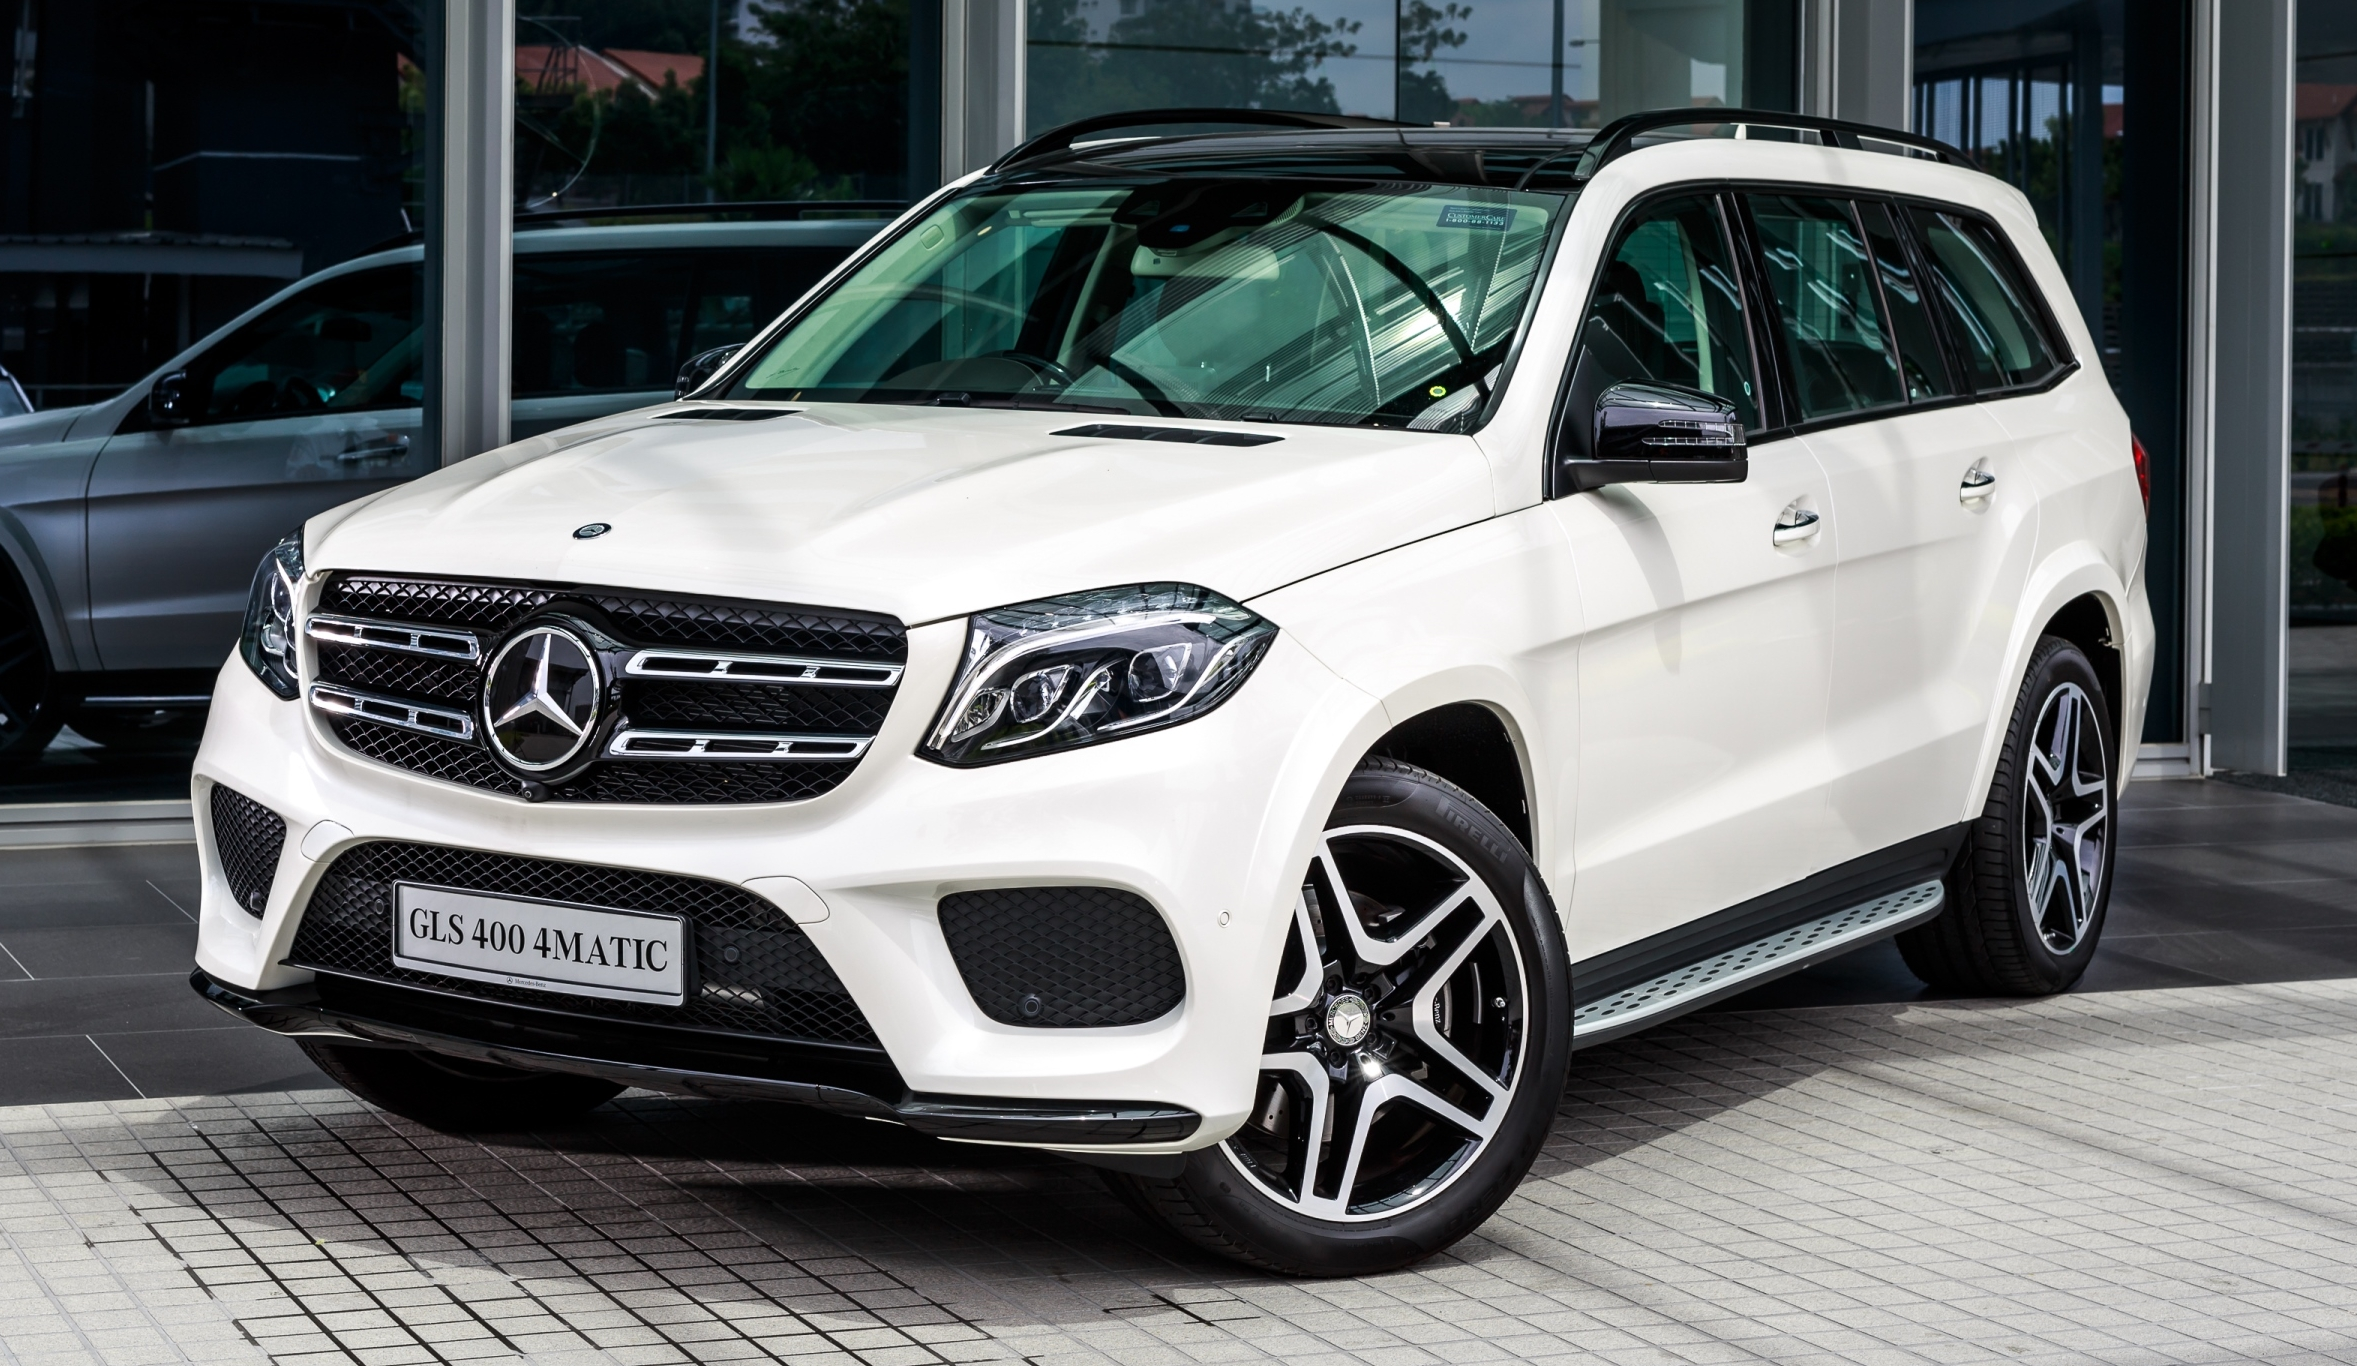 Mercedes benz gls 400 4matic launched rm889k for Mercedes benz glc 400